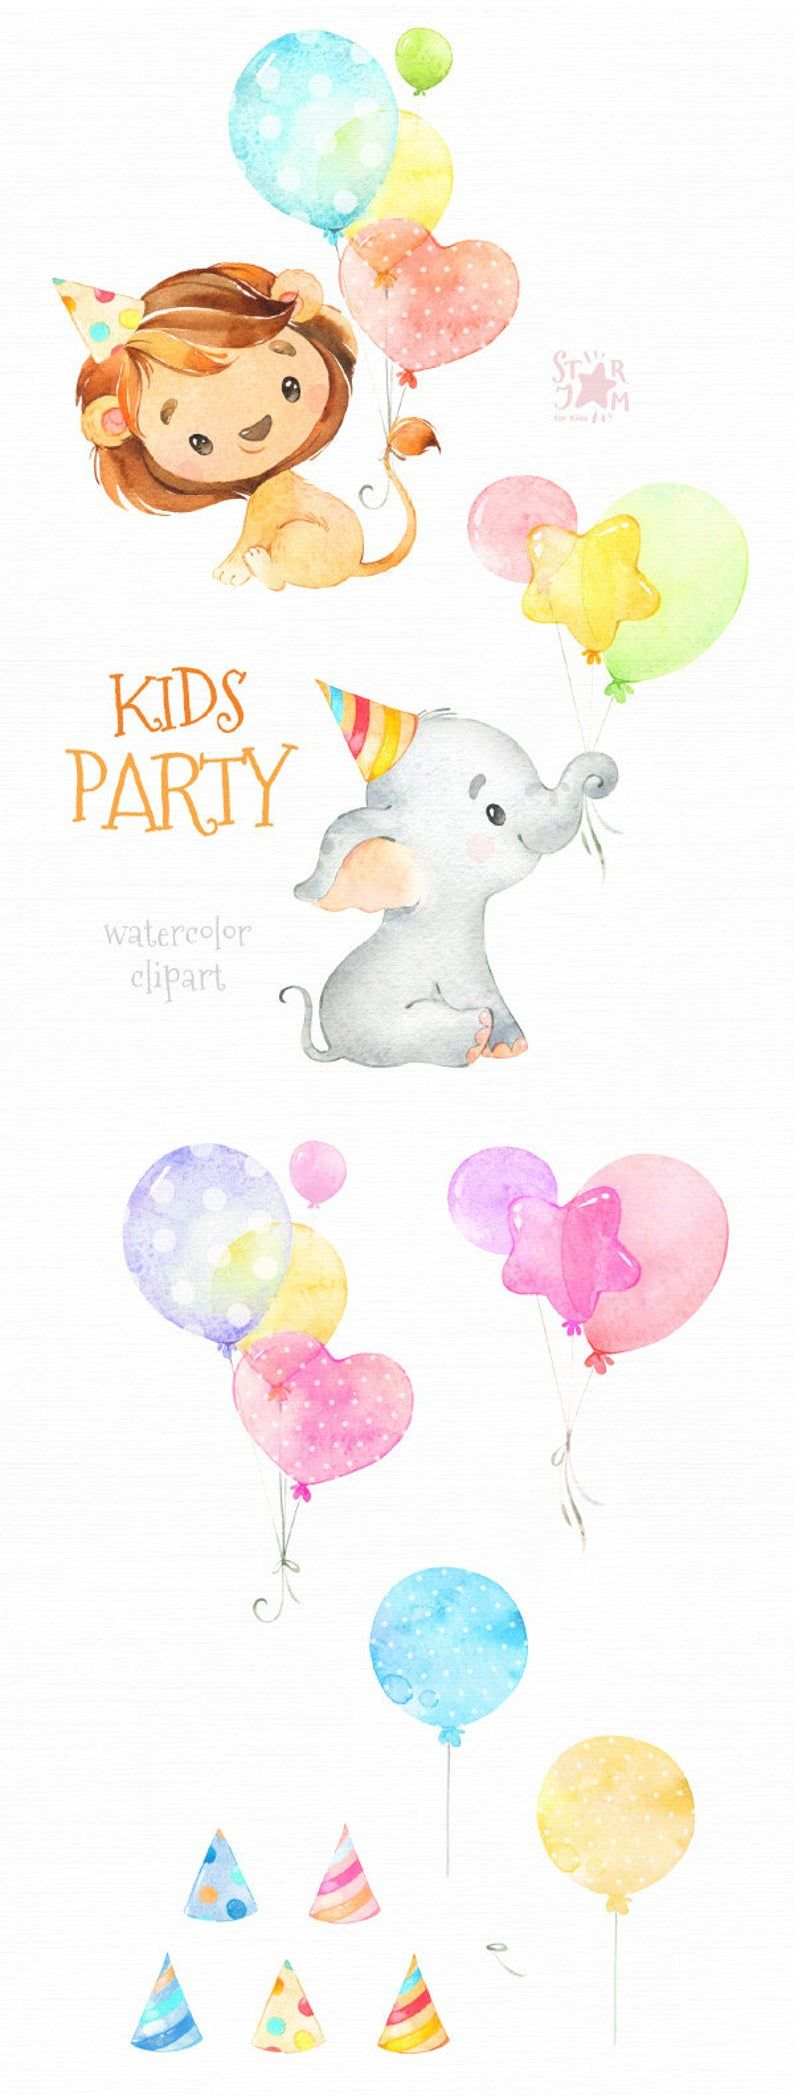 Kids Party Elephant Lion Watercolor Little Animal Birthday Etsy In 2021 Birthday Clipart Clip Art Baby Clip Art